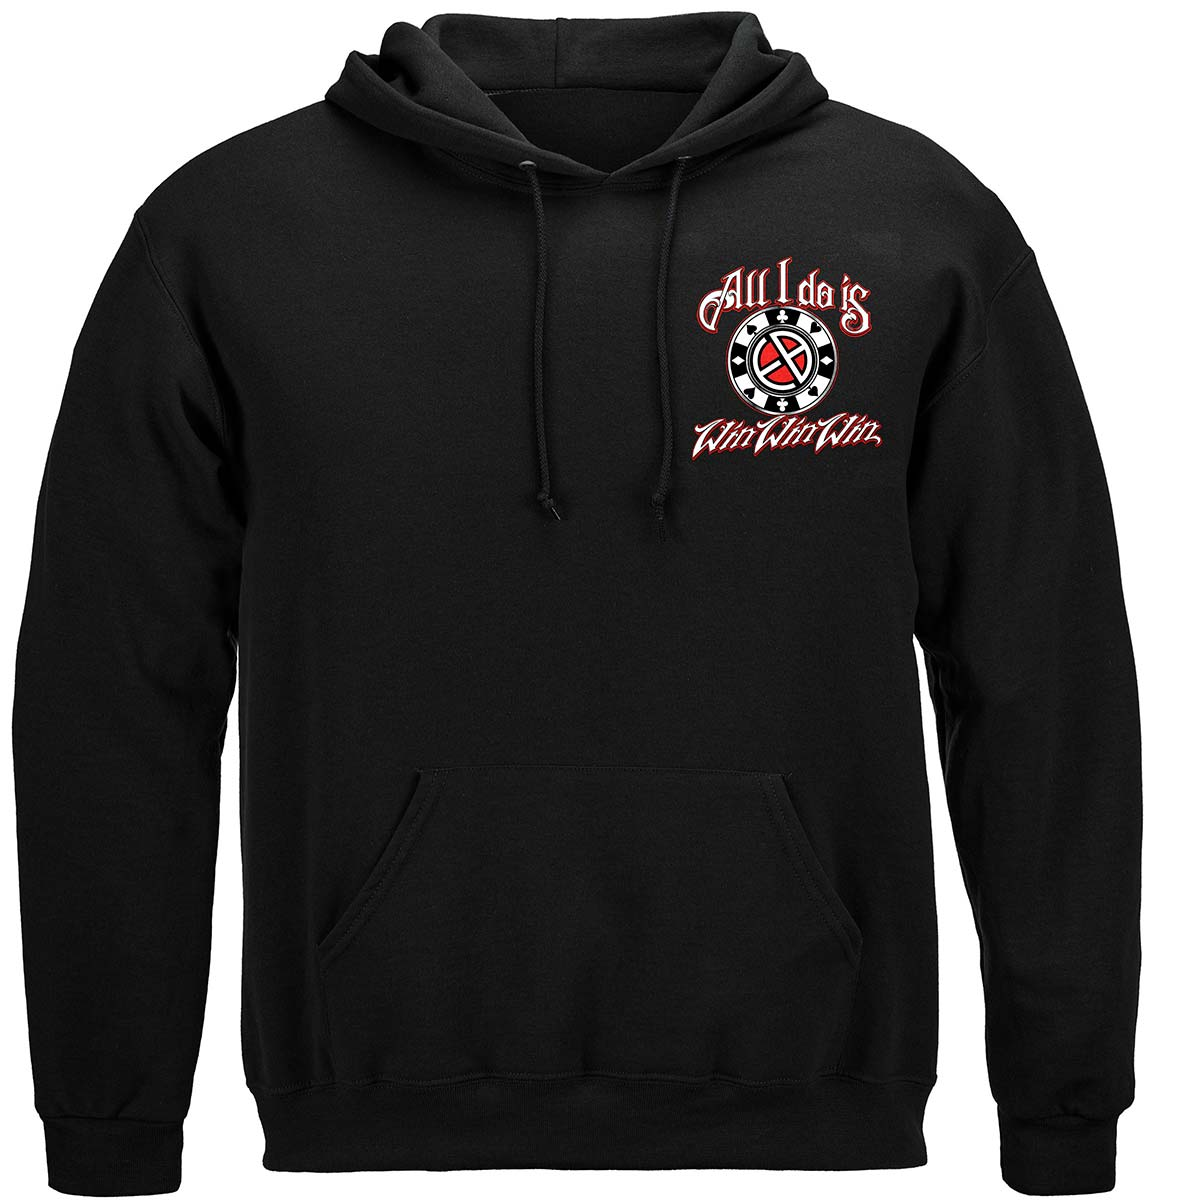 All I Do Is Win Win Win Premium Hooded Sweat Shirt